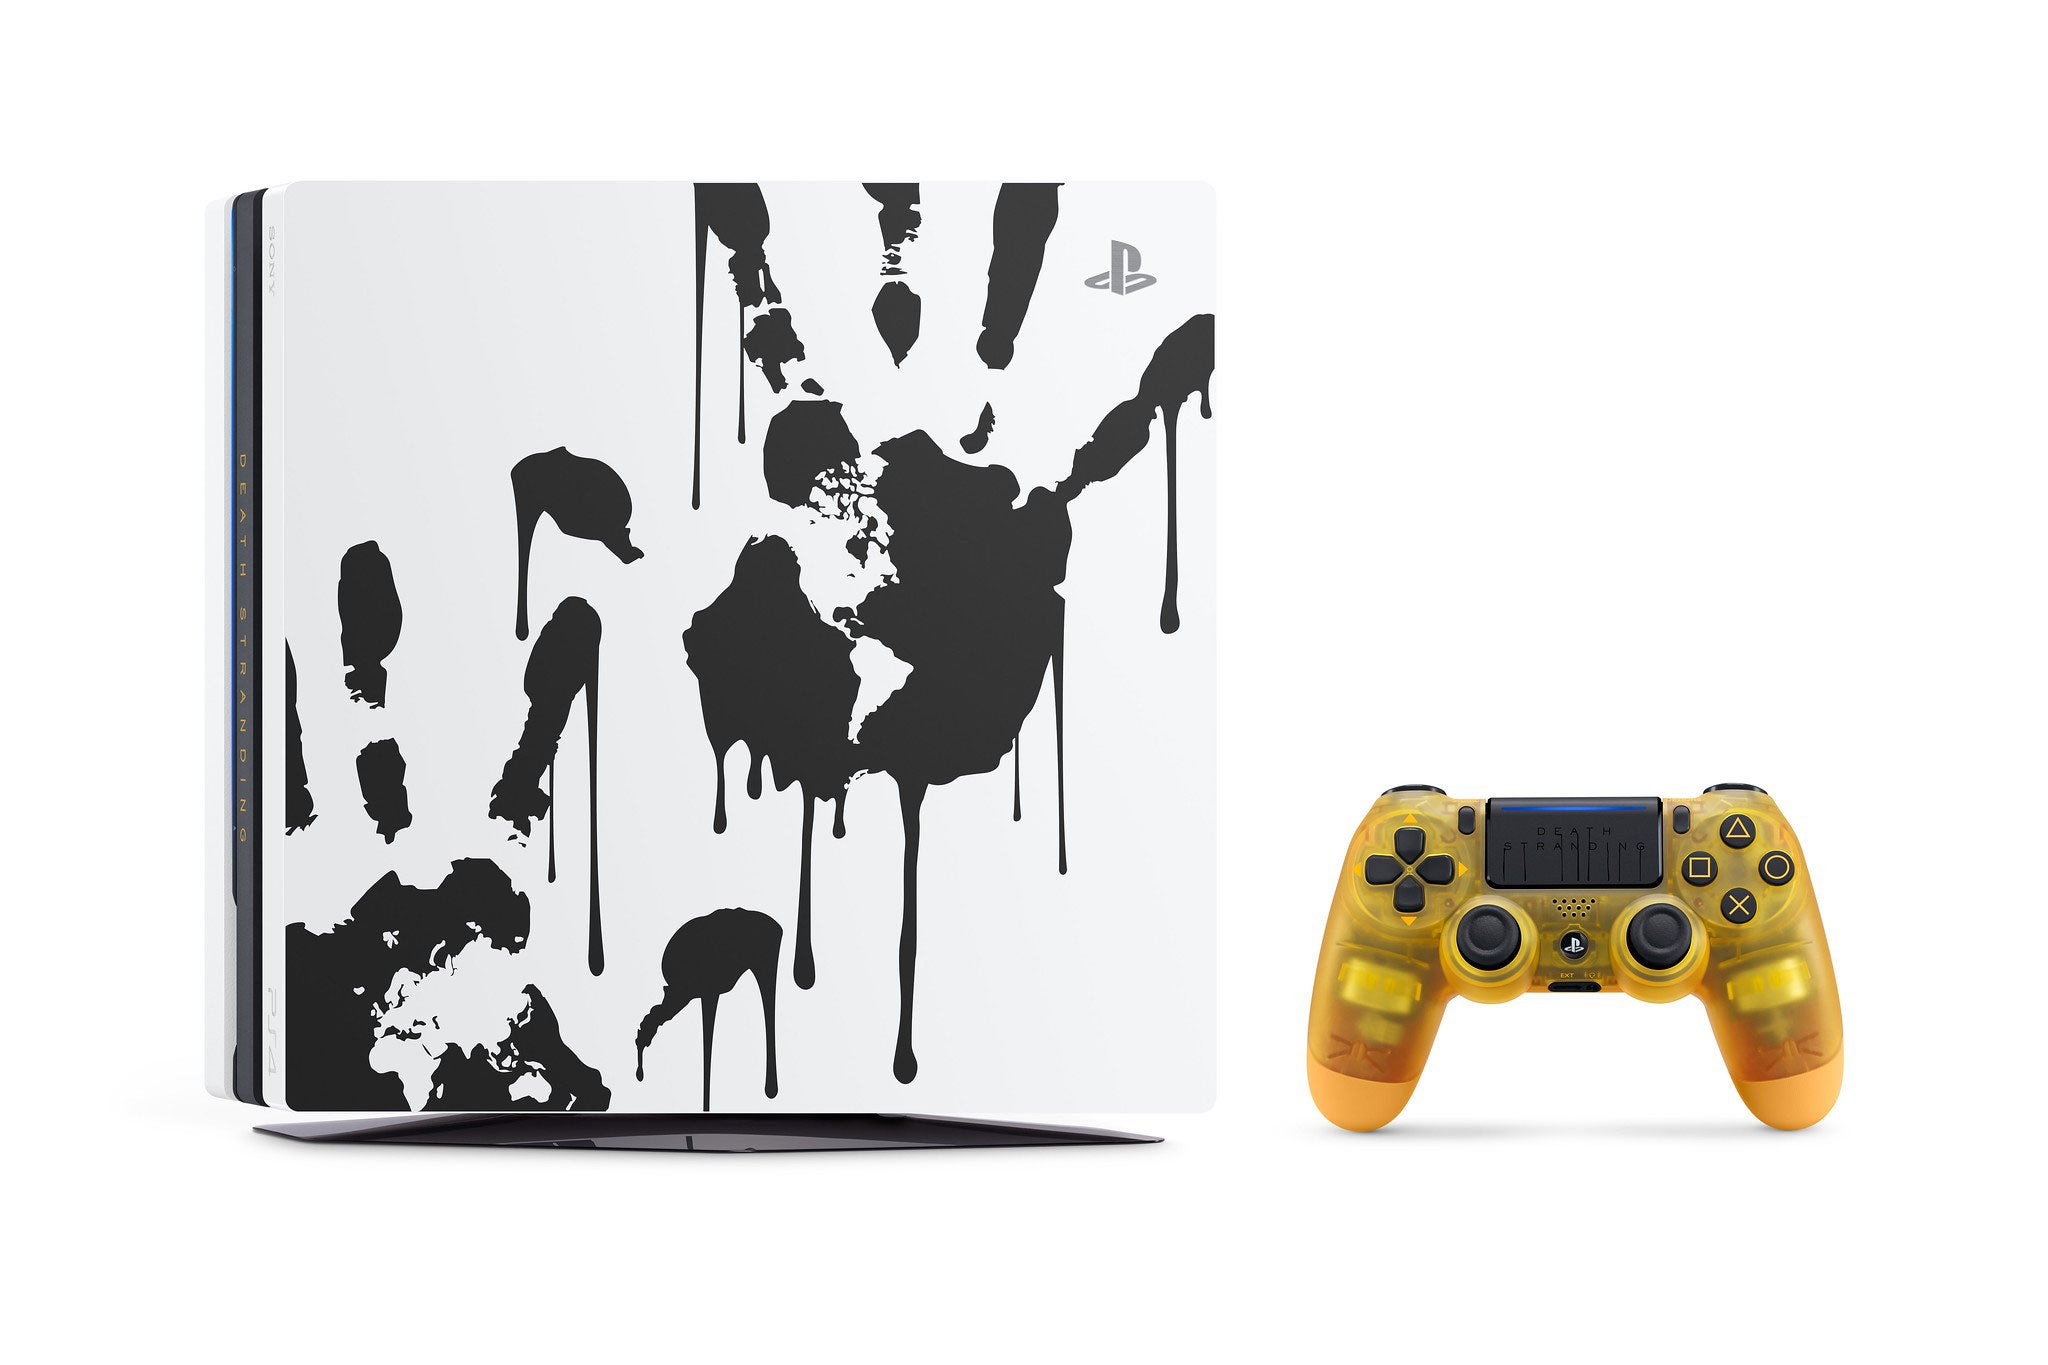 New Death Stranding PS4 Has A Controller Based On The Weird Baby